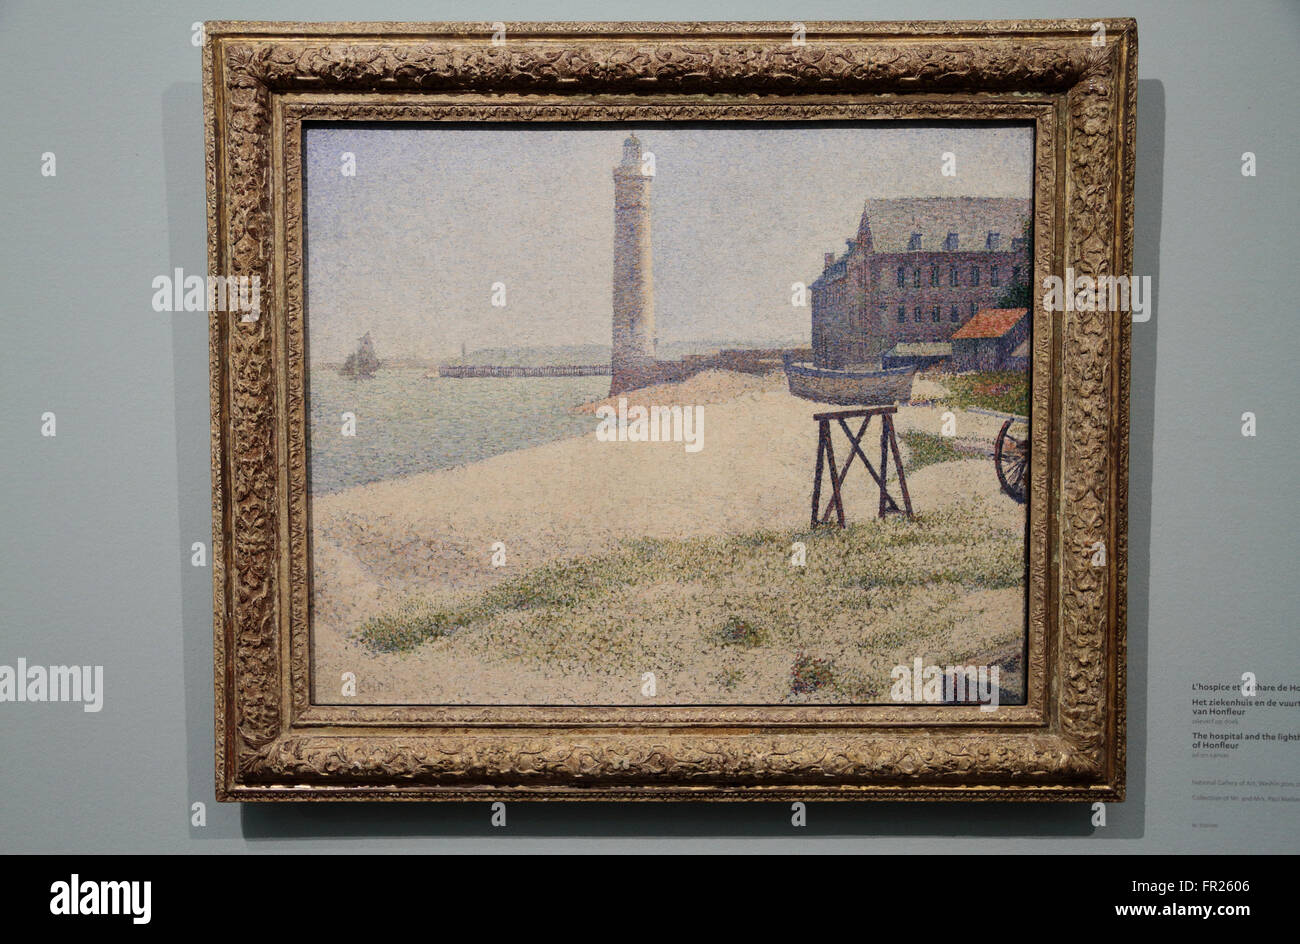 """The Hospital and the lighthouse of Honfleur"" by Georges Seurat in the Kröller-Müller Museum, Otterlo, Netherlands. Stock Photo"